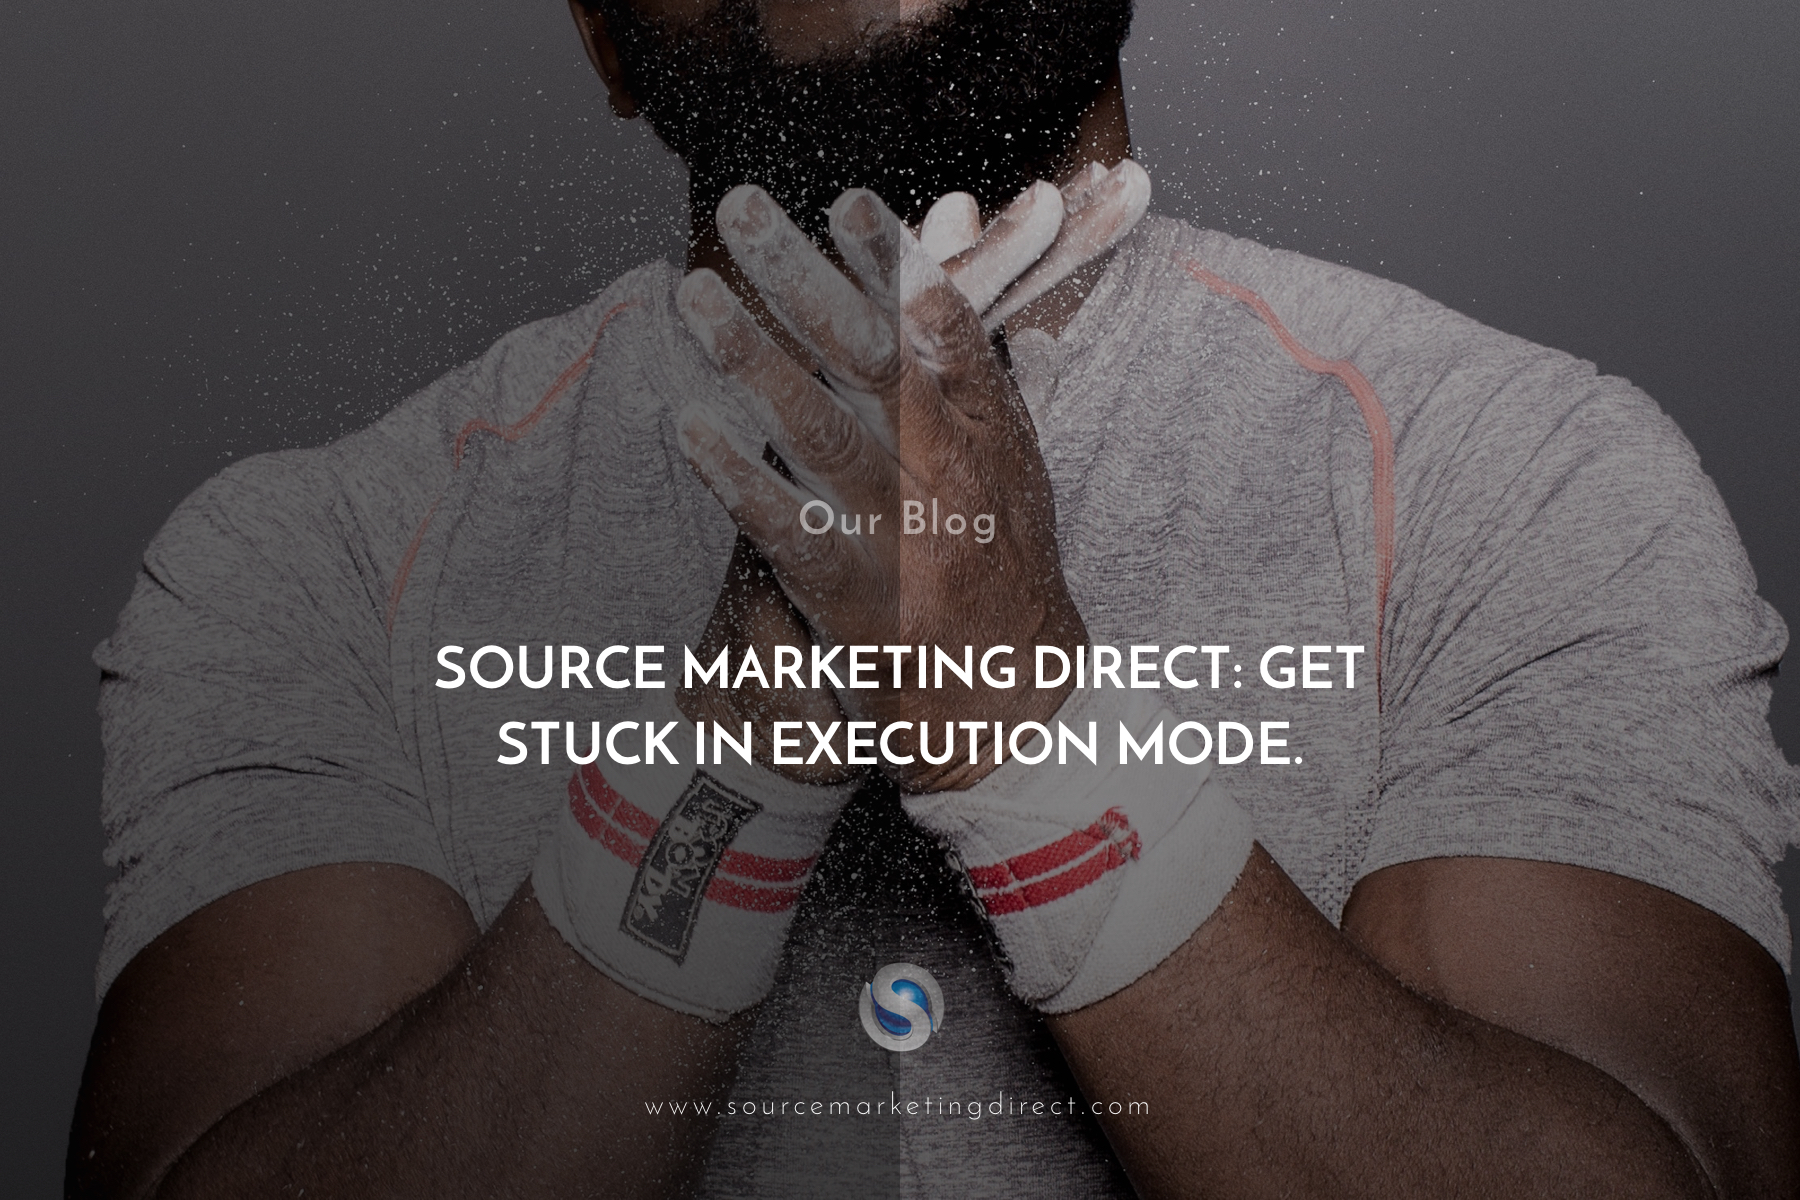 Source Marketing Direct: Get stuck in execution mode.